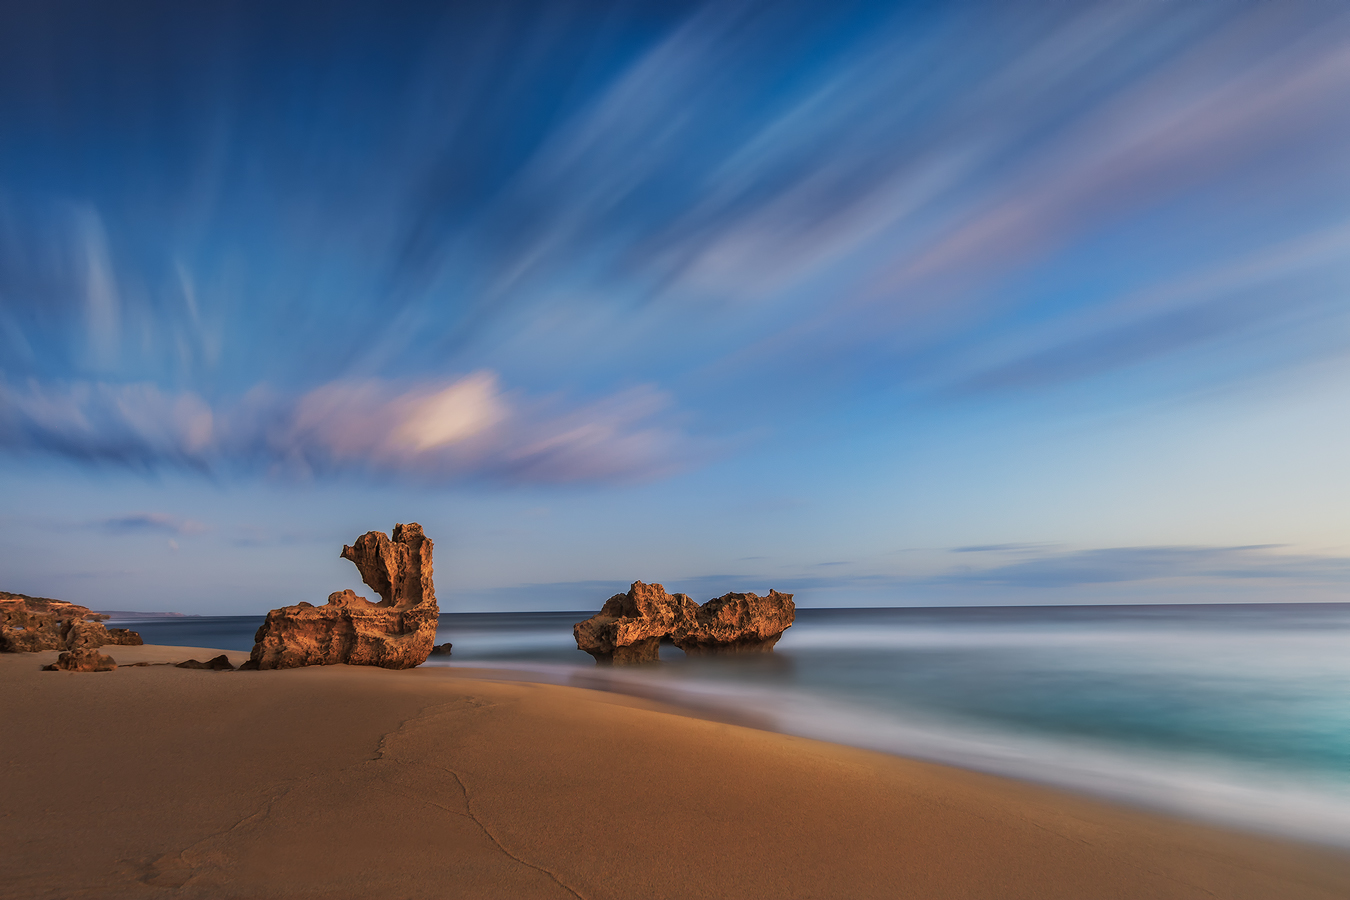 Montforts beach and the Bunny Rock | Landscape Photography | Long Exposure Photography | Mornington Peninsula | We Are Raw Photography